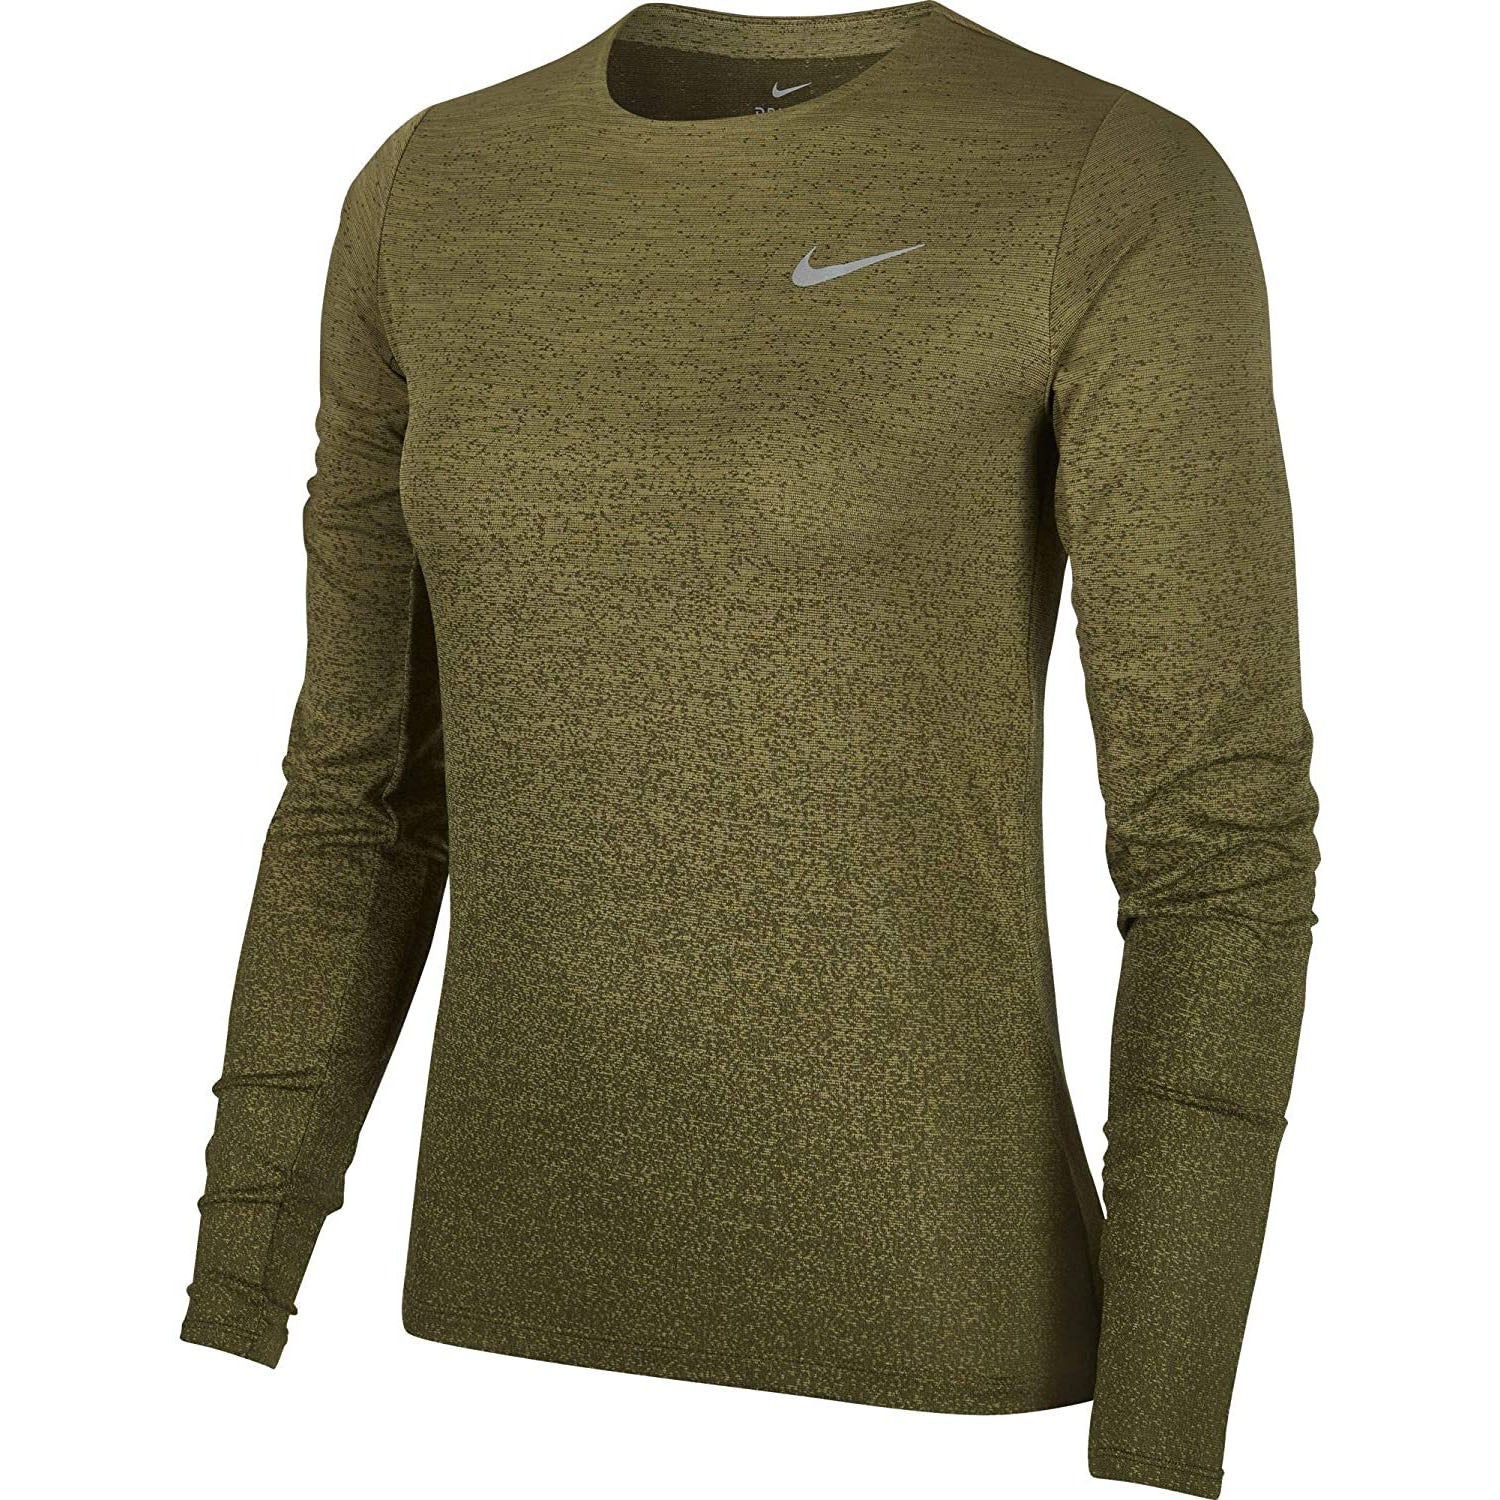 Nike Women's Medalist Long-Sleeve Running Top